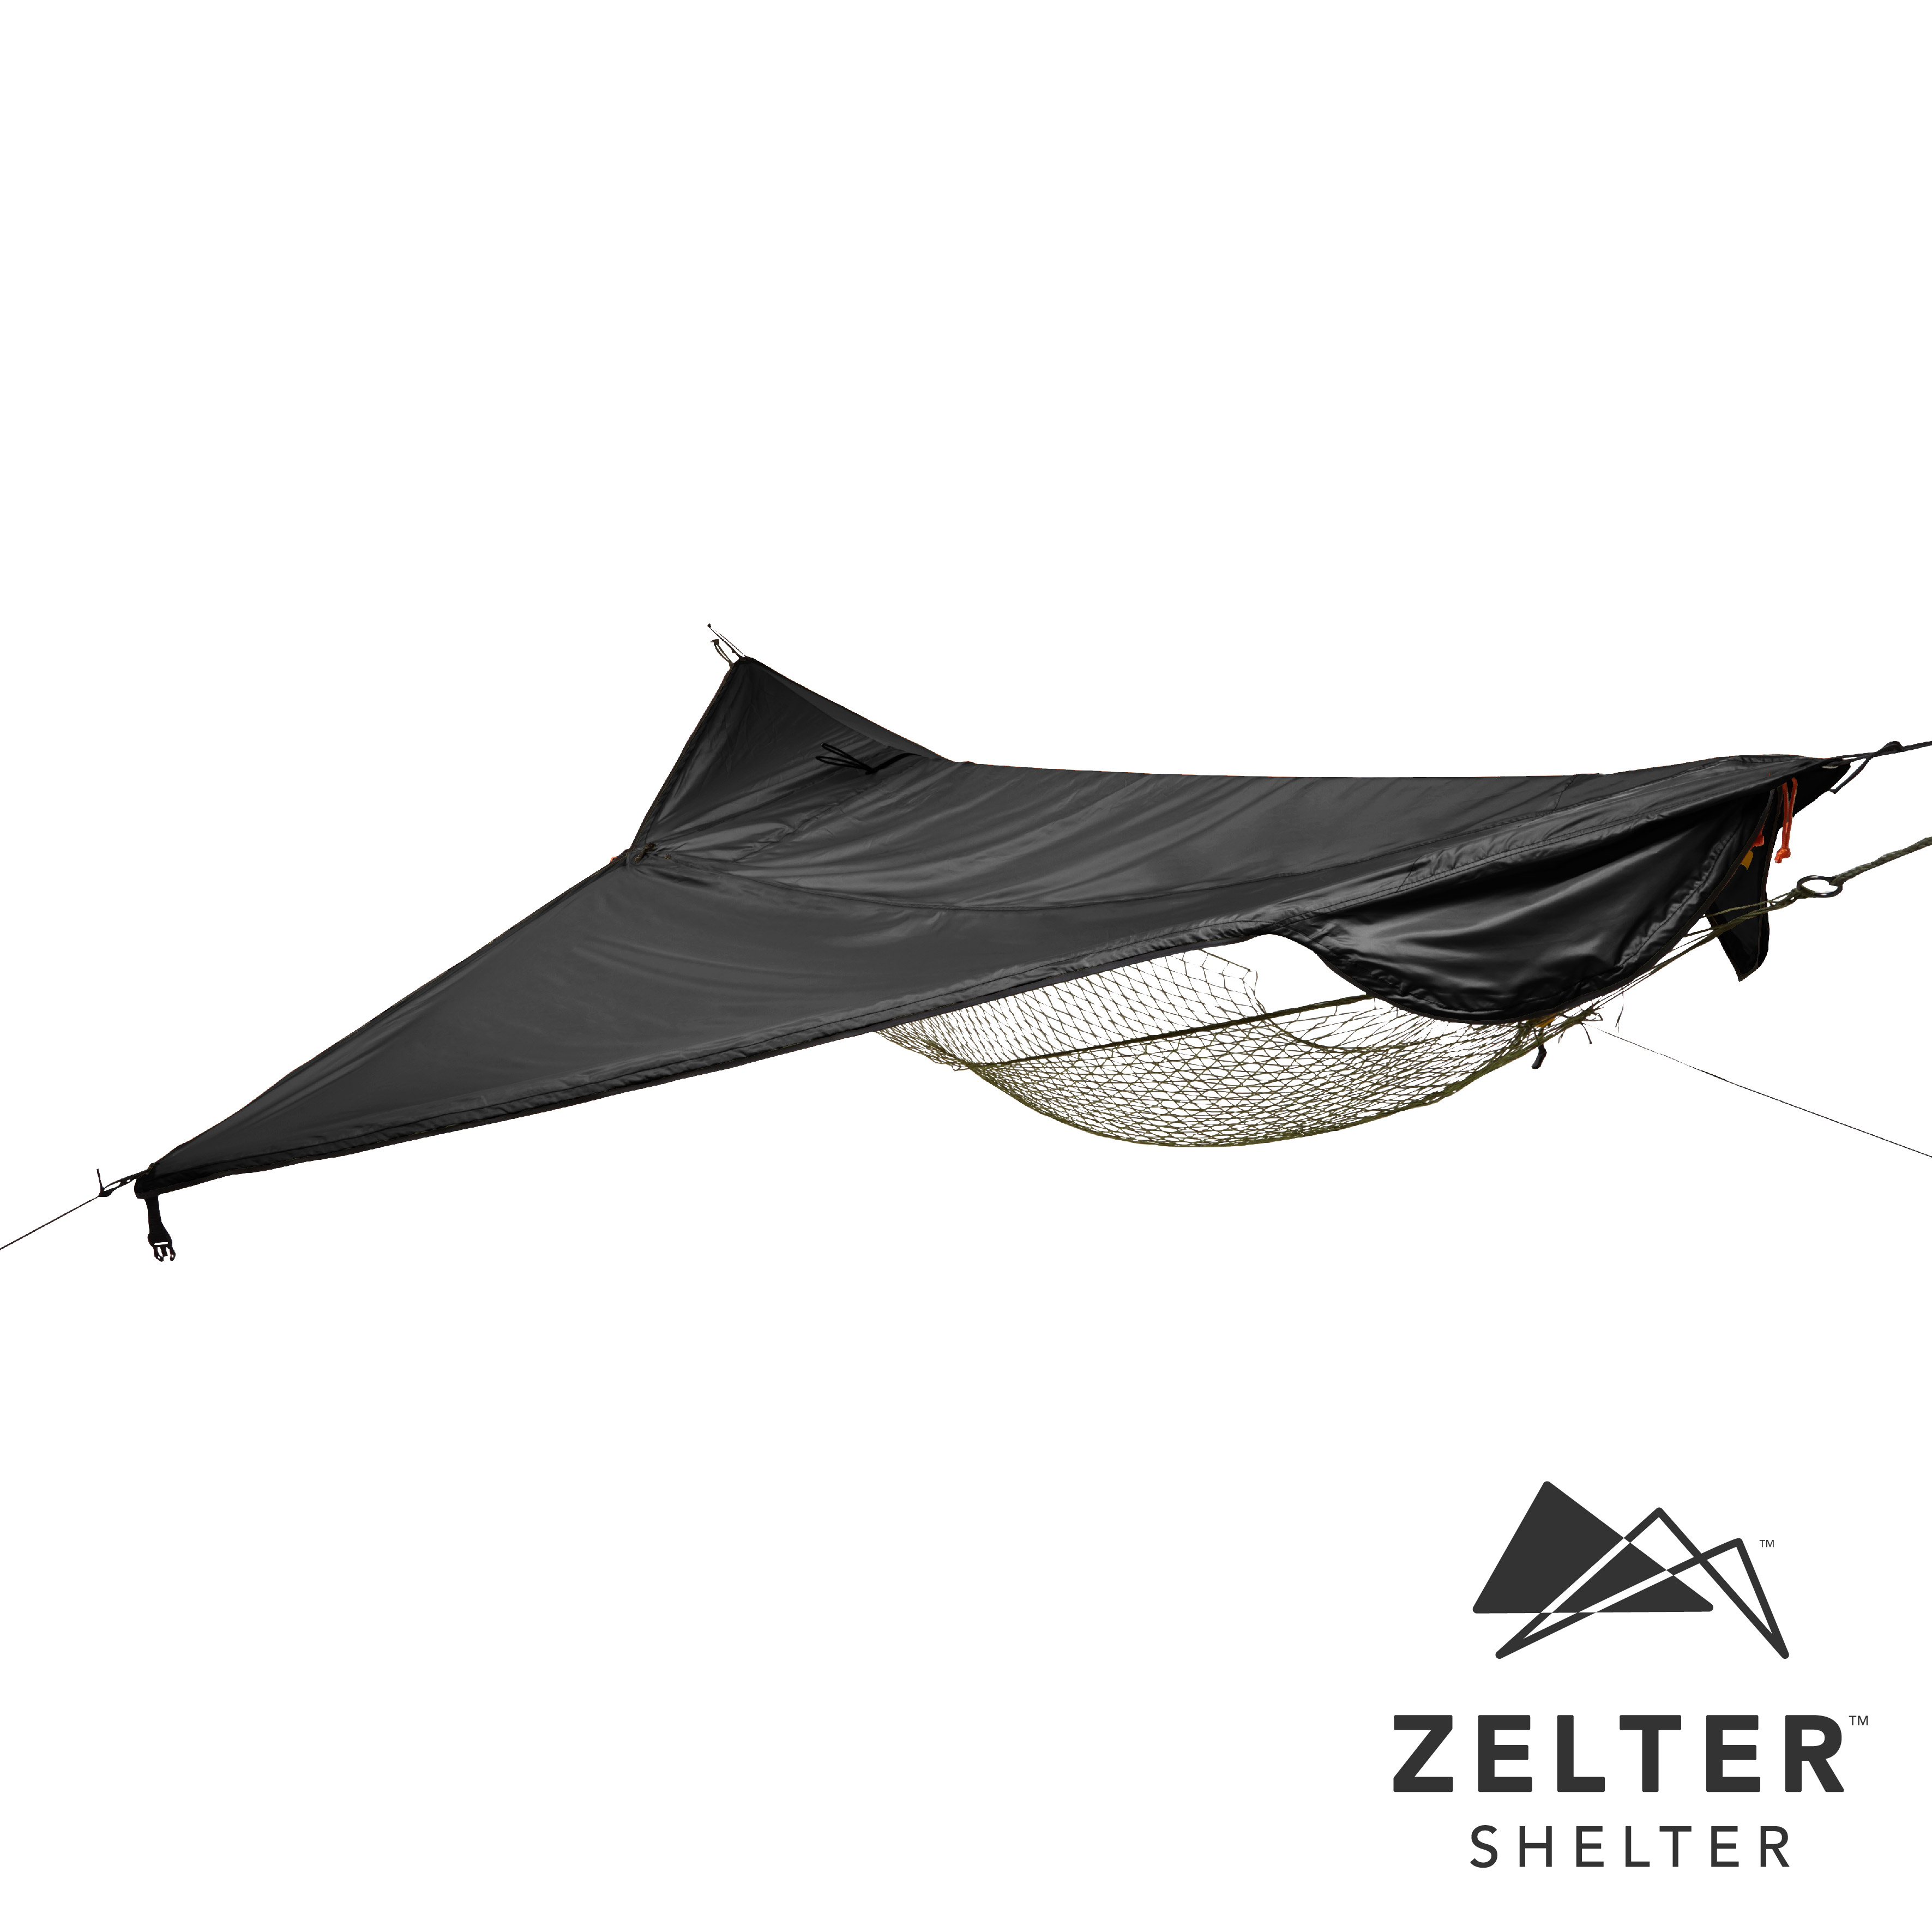 Zelter Shelter (Midnight Black) LIMITED EDITION *SOLD OUT!*